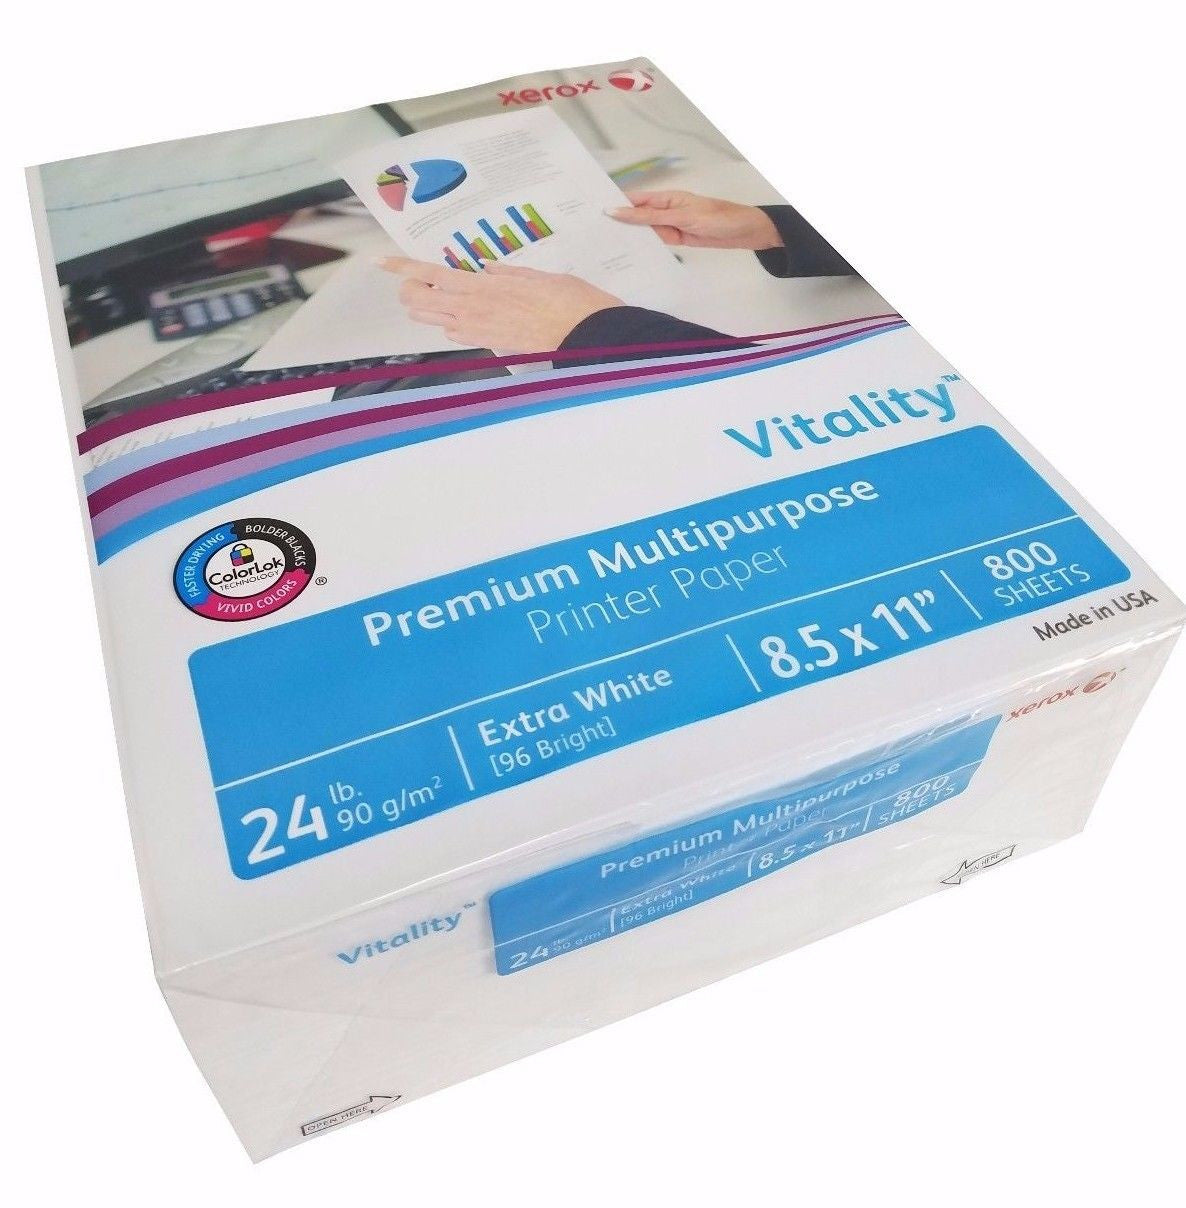 Xerox Vitality Premium Multipurpose Printer Paper 24lb Extra White 800 Sheets